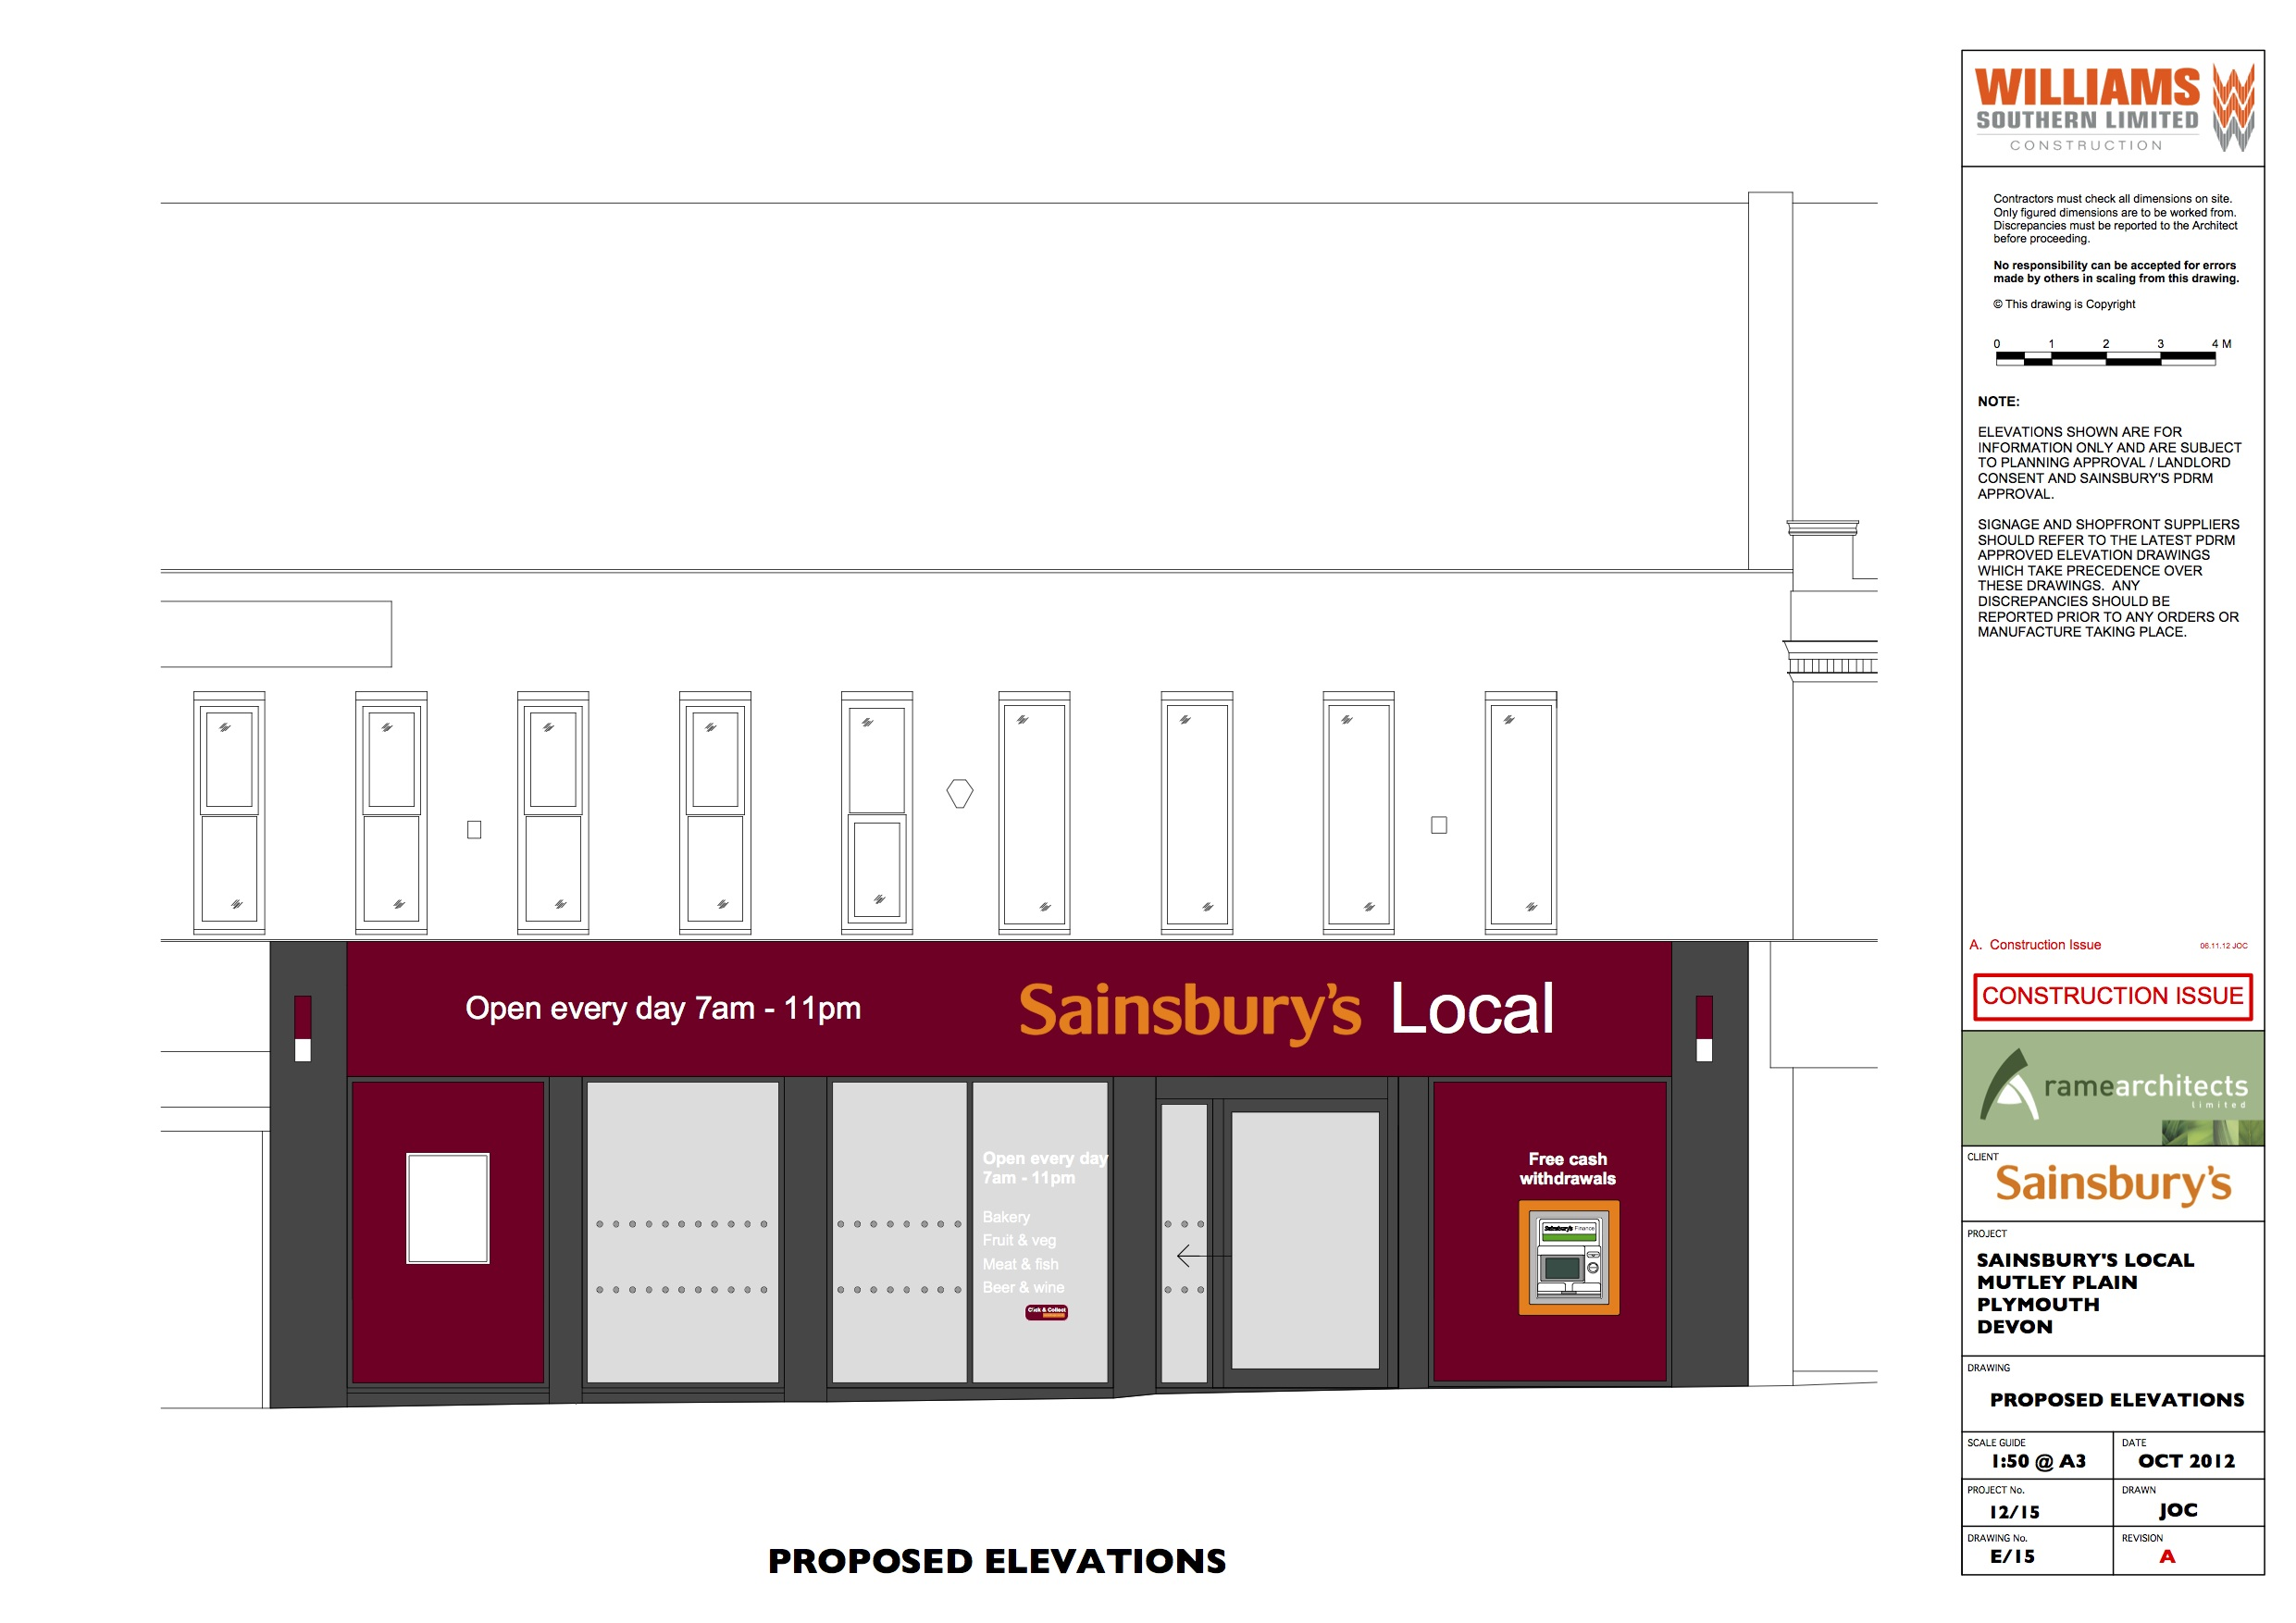 Sainsbury's Proposed Elevations.jpg